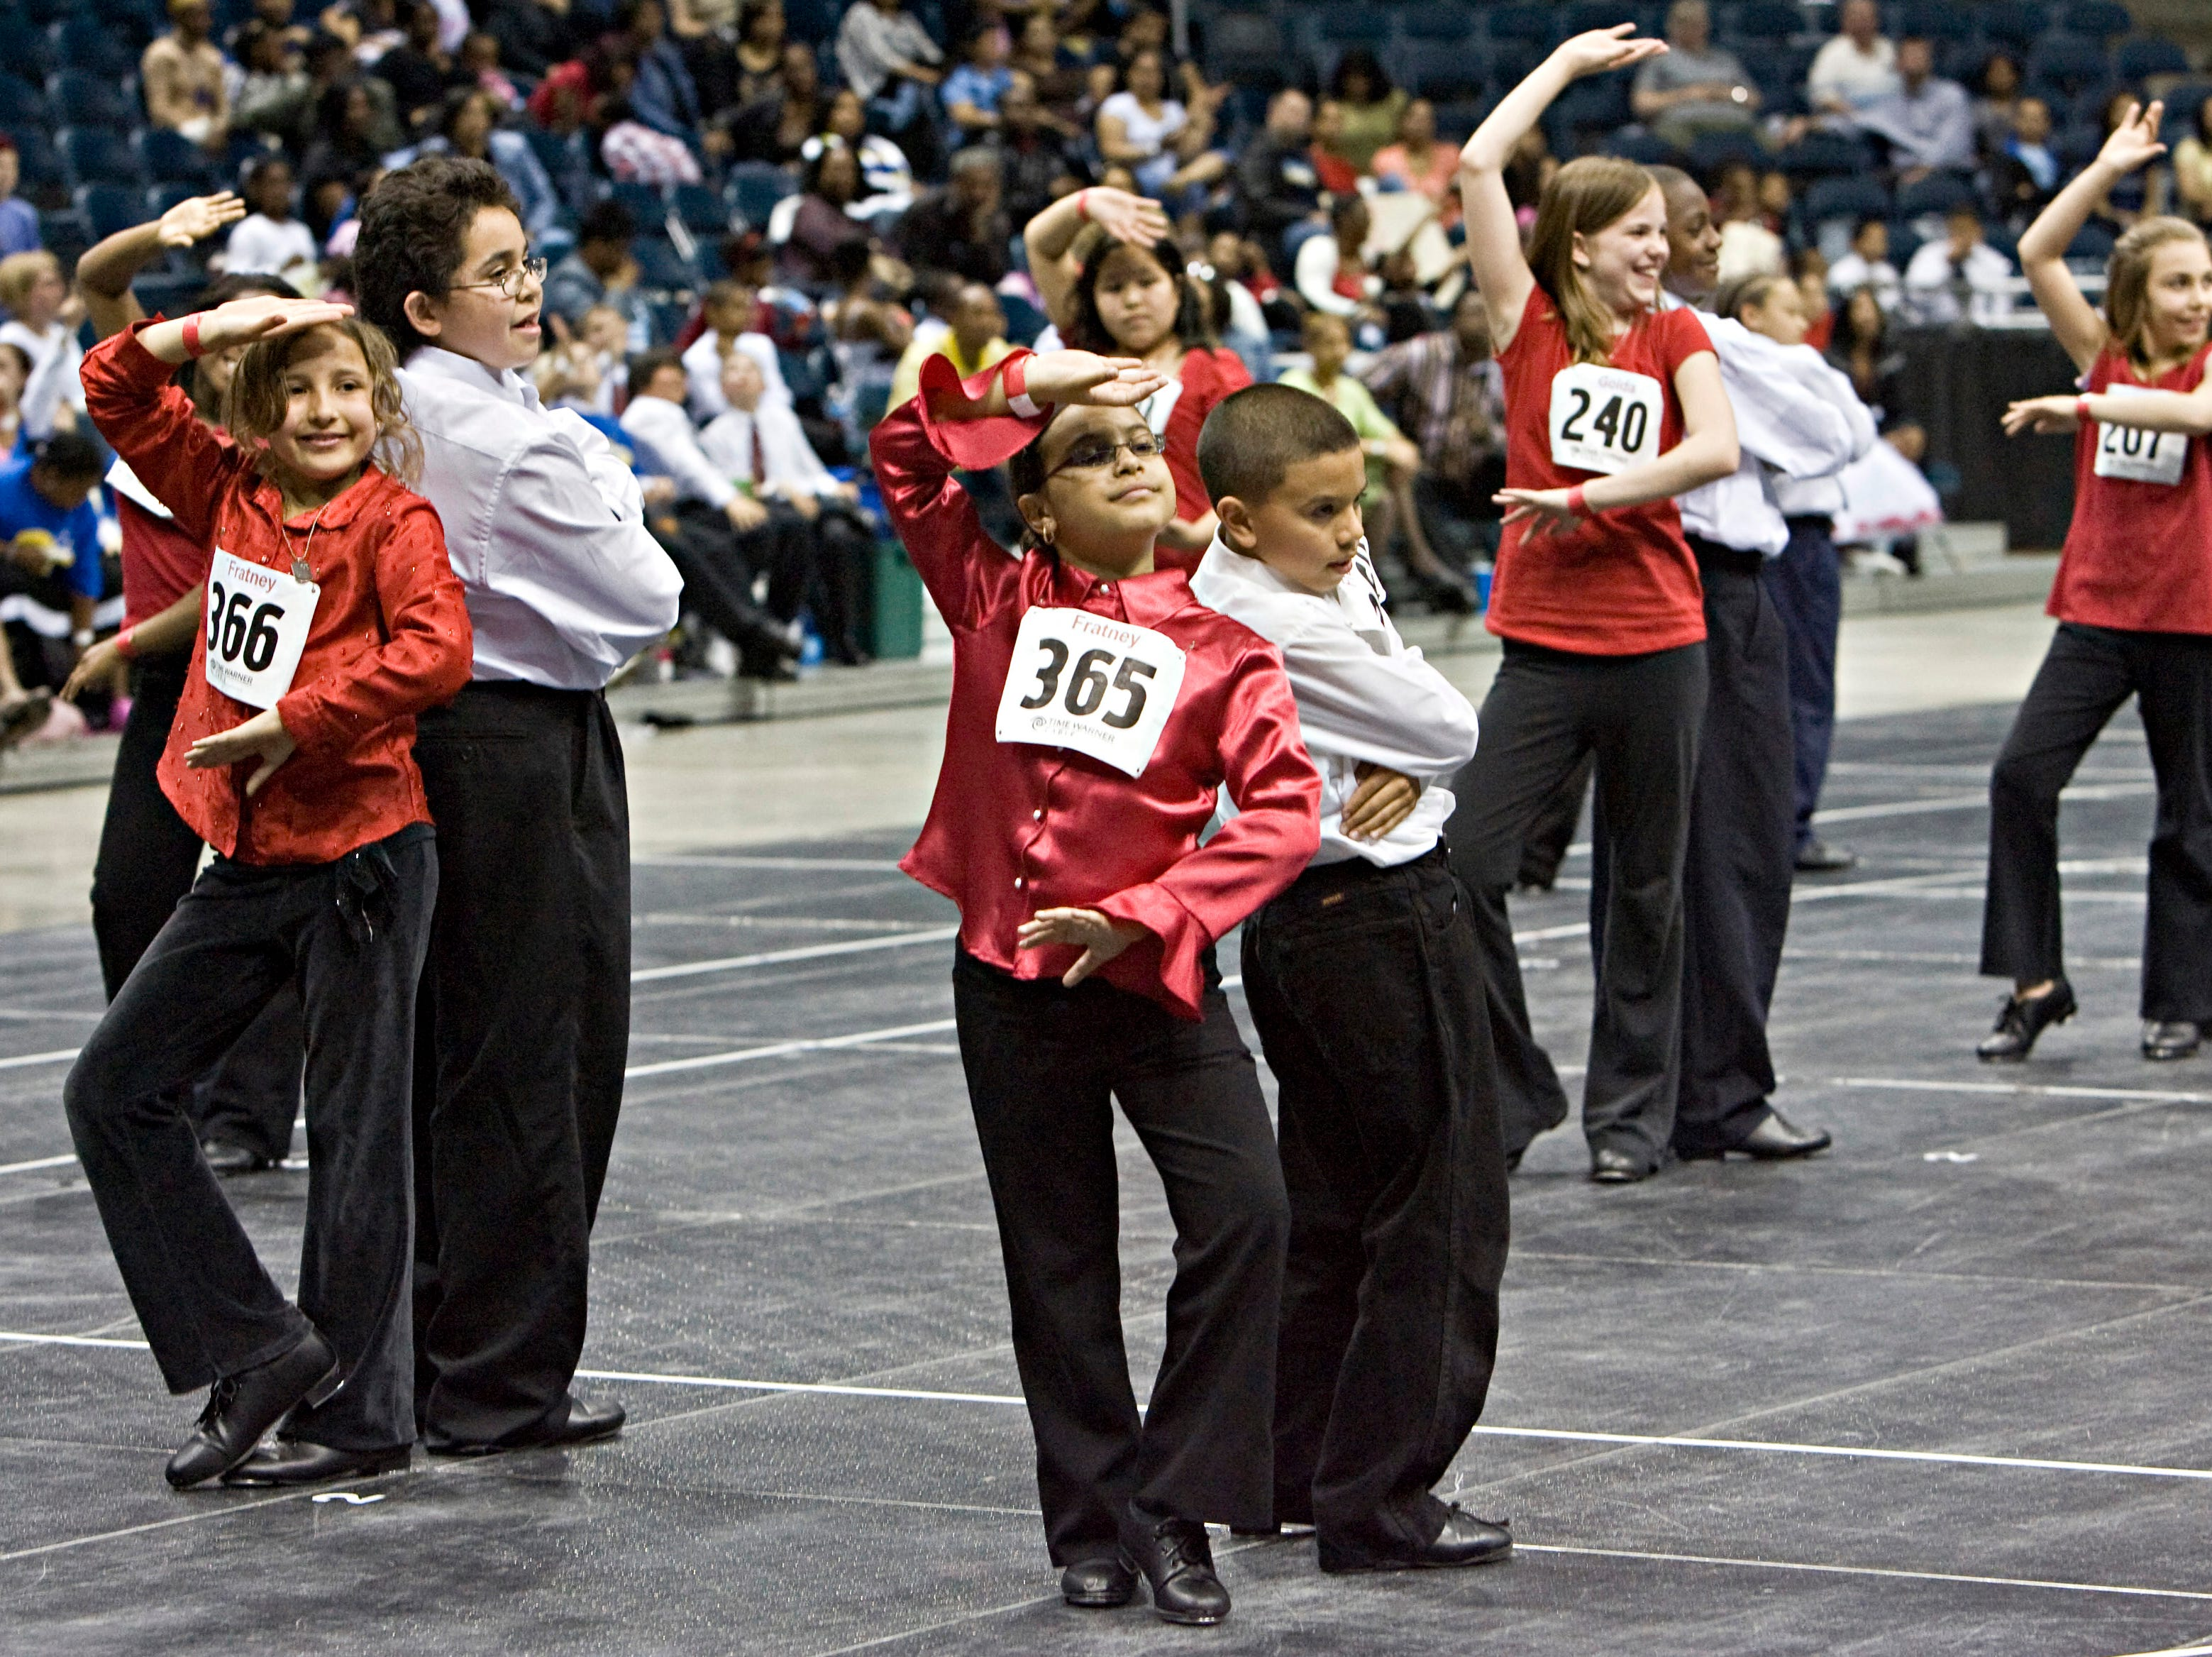 2008: Tap dancers hold their pose after finishing as judges tally their evaluations during the 2nd Annual Mad Hot Ballroom & Tap Competition at the Bradley Center.